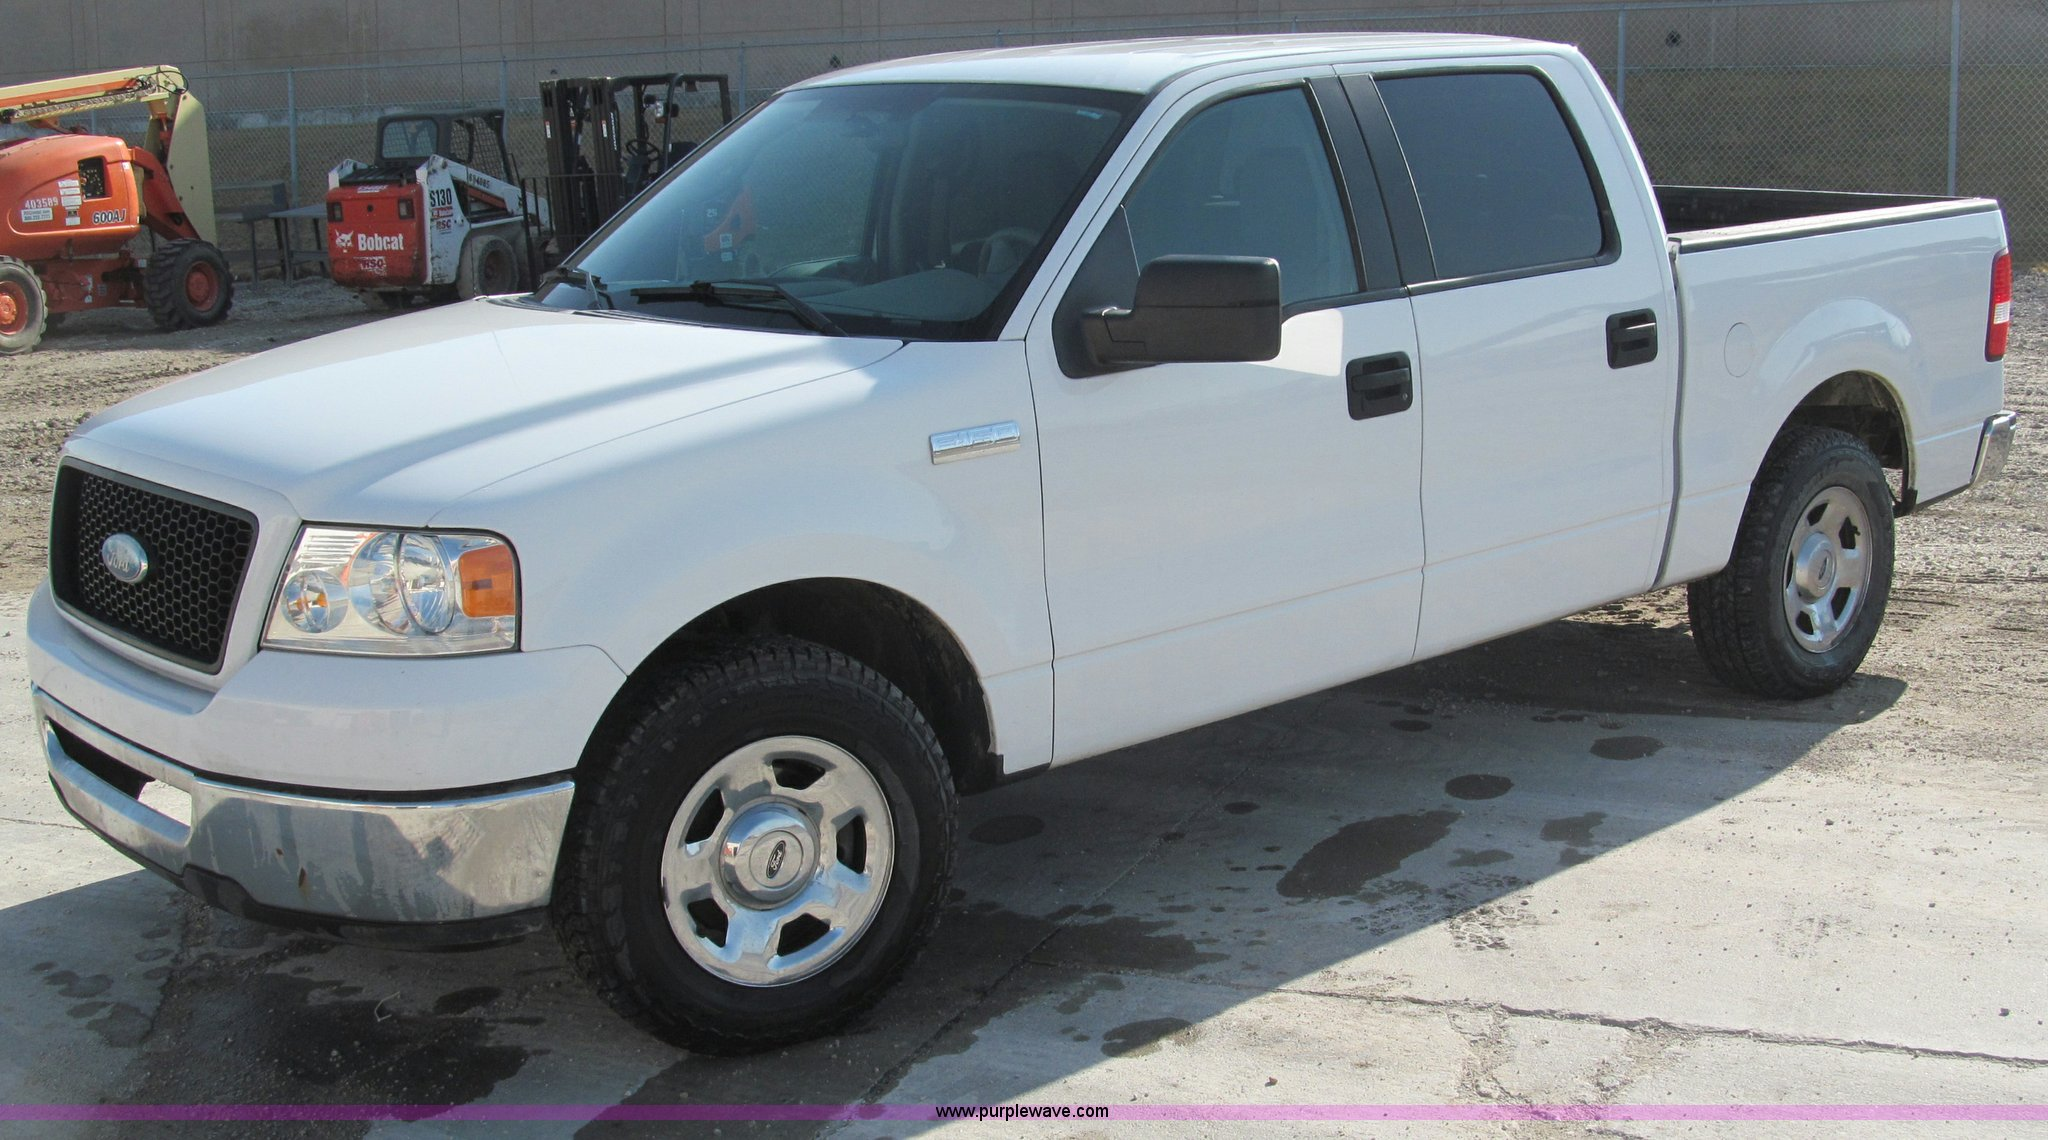 2006 Ford F150 Xlt Crew Cab Pickup Truck In Omaha Ne Item B5112 Sold Purple Wave